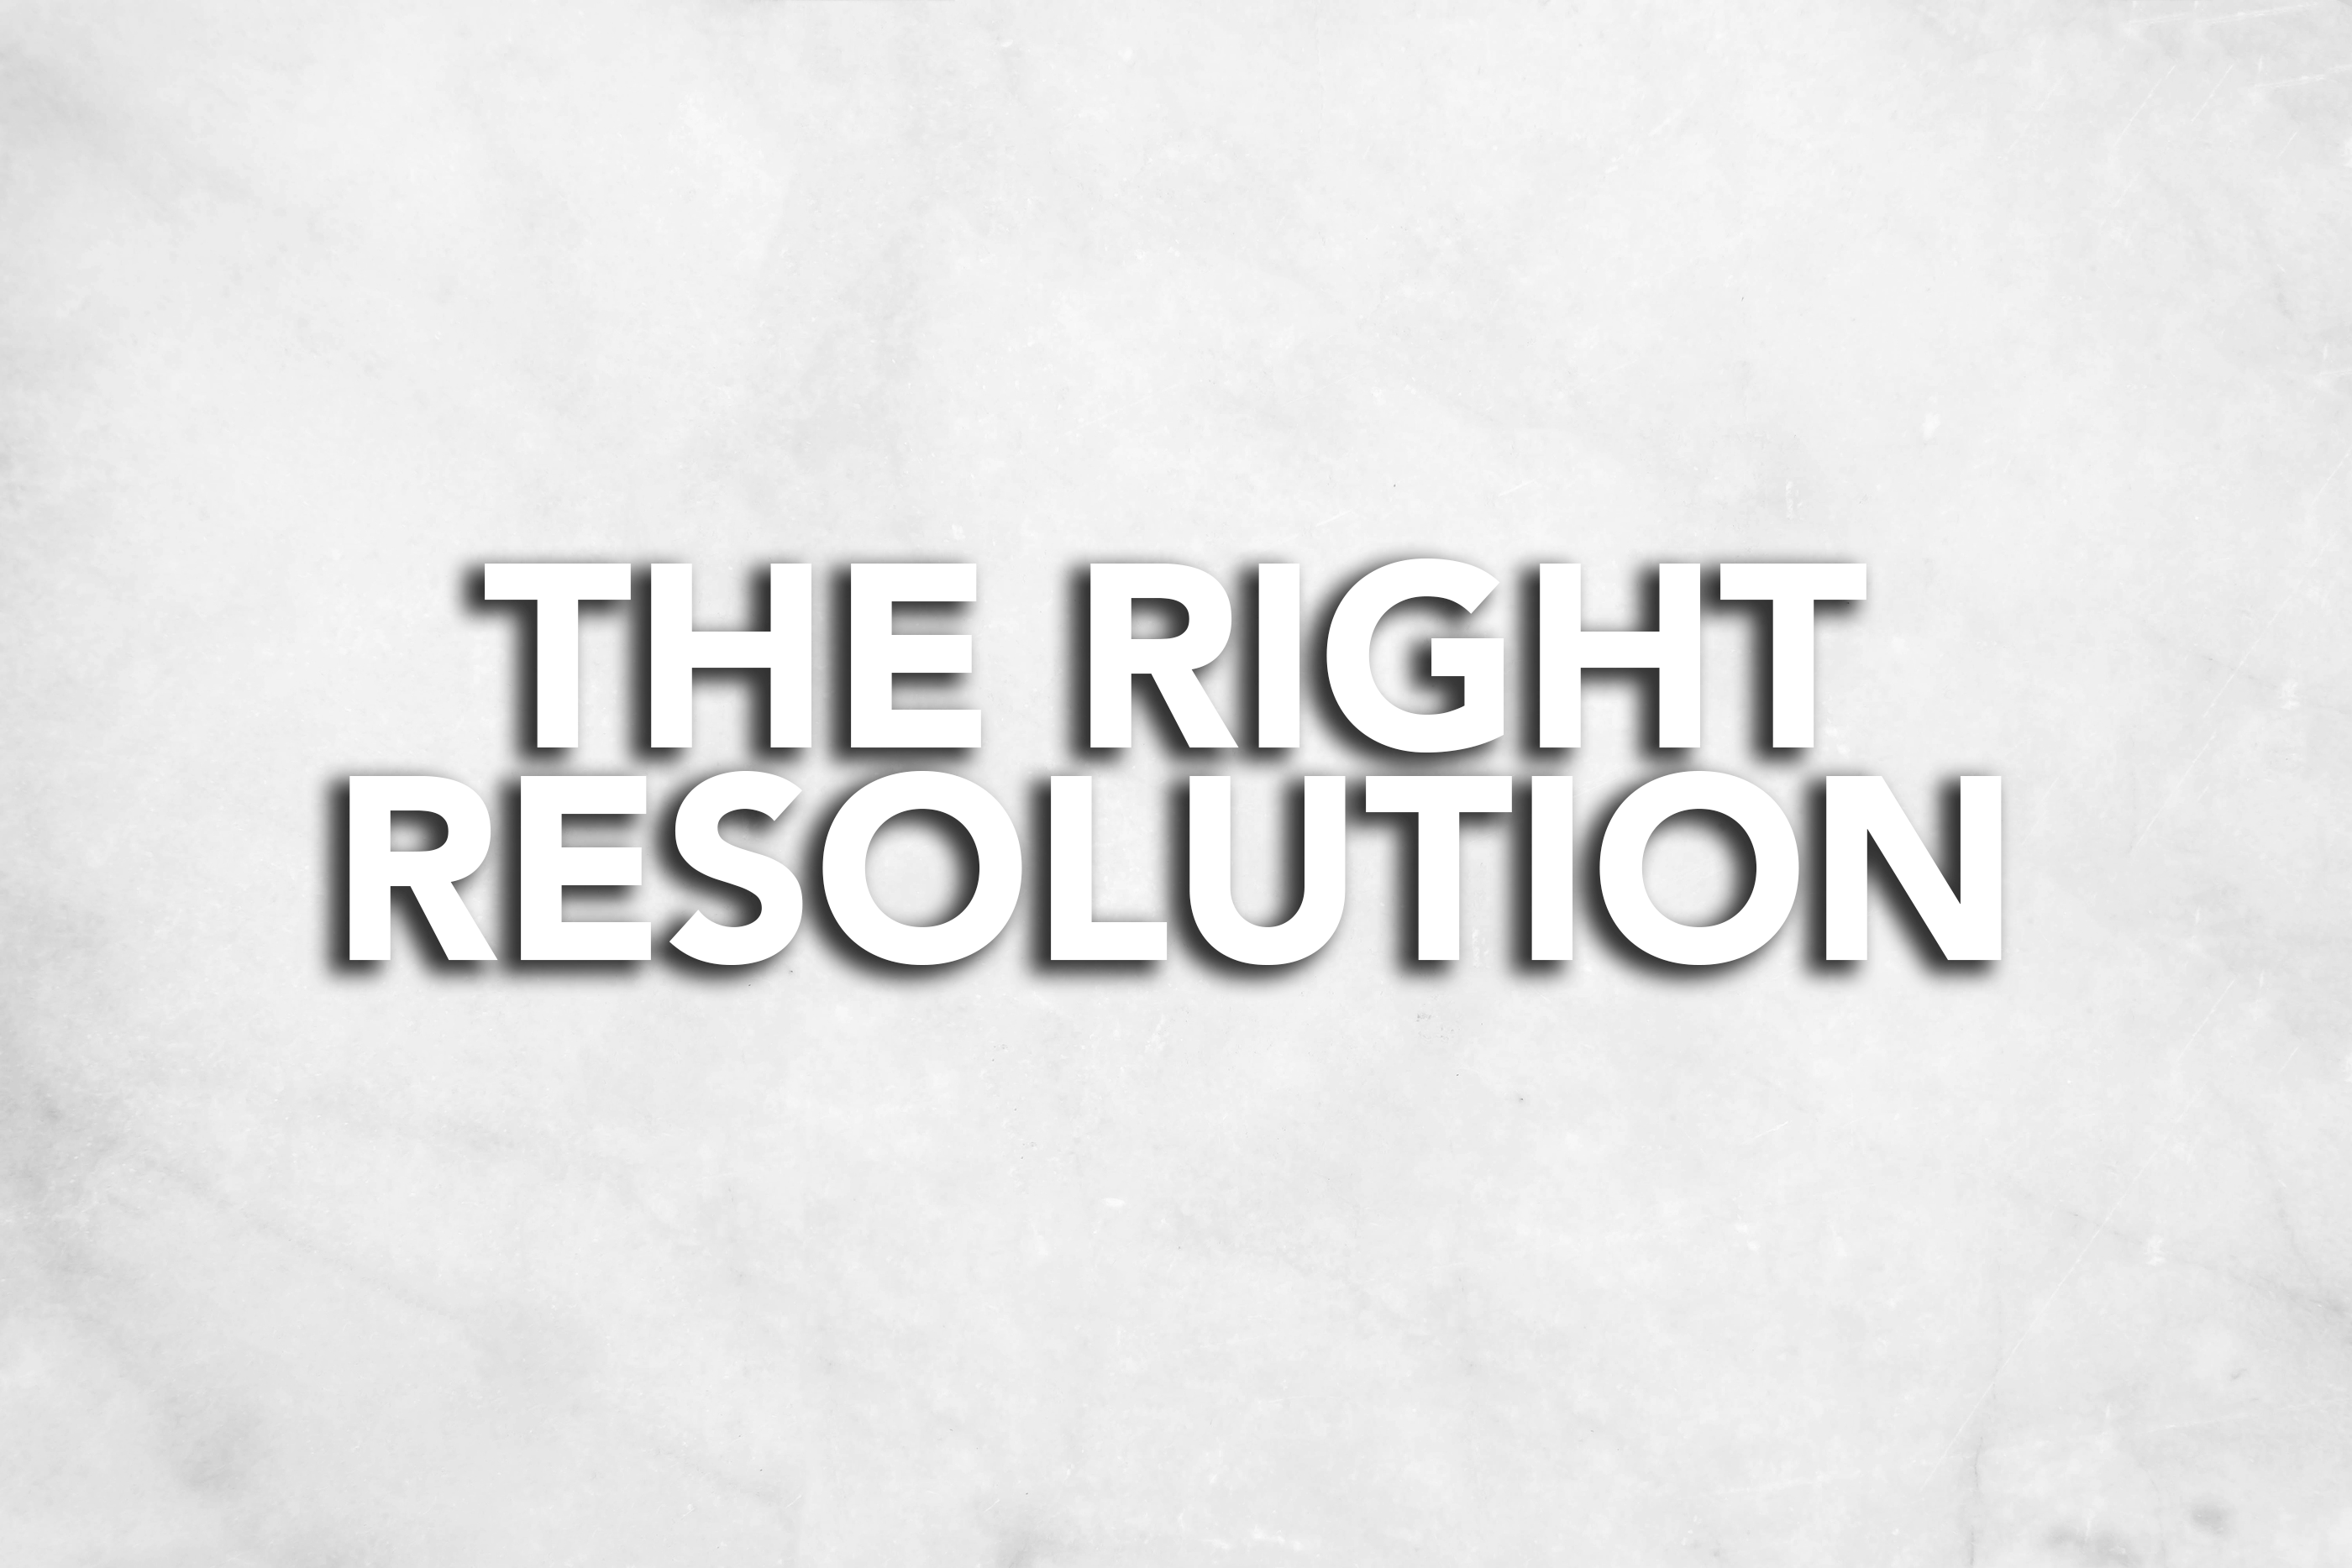 The Right Resolution